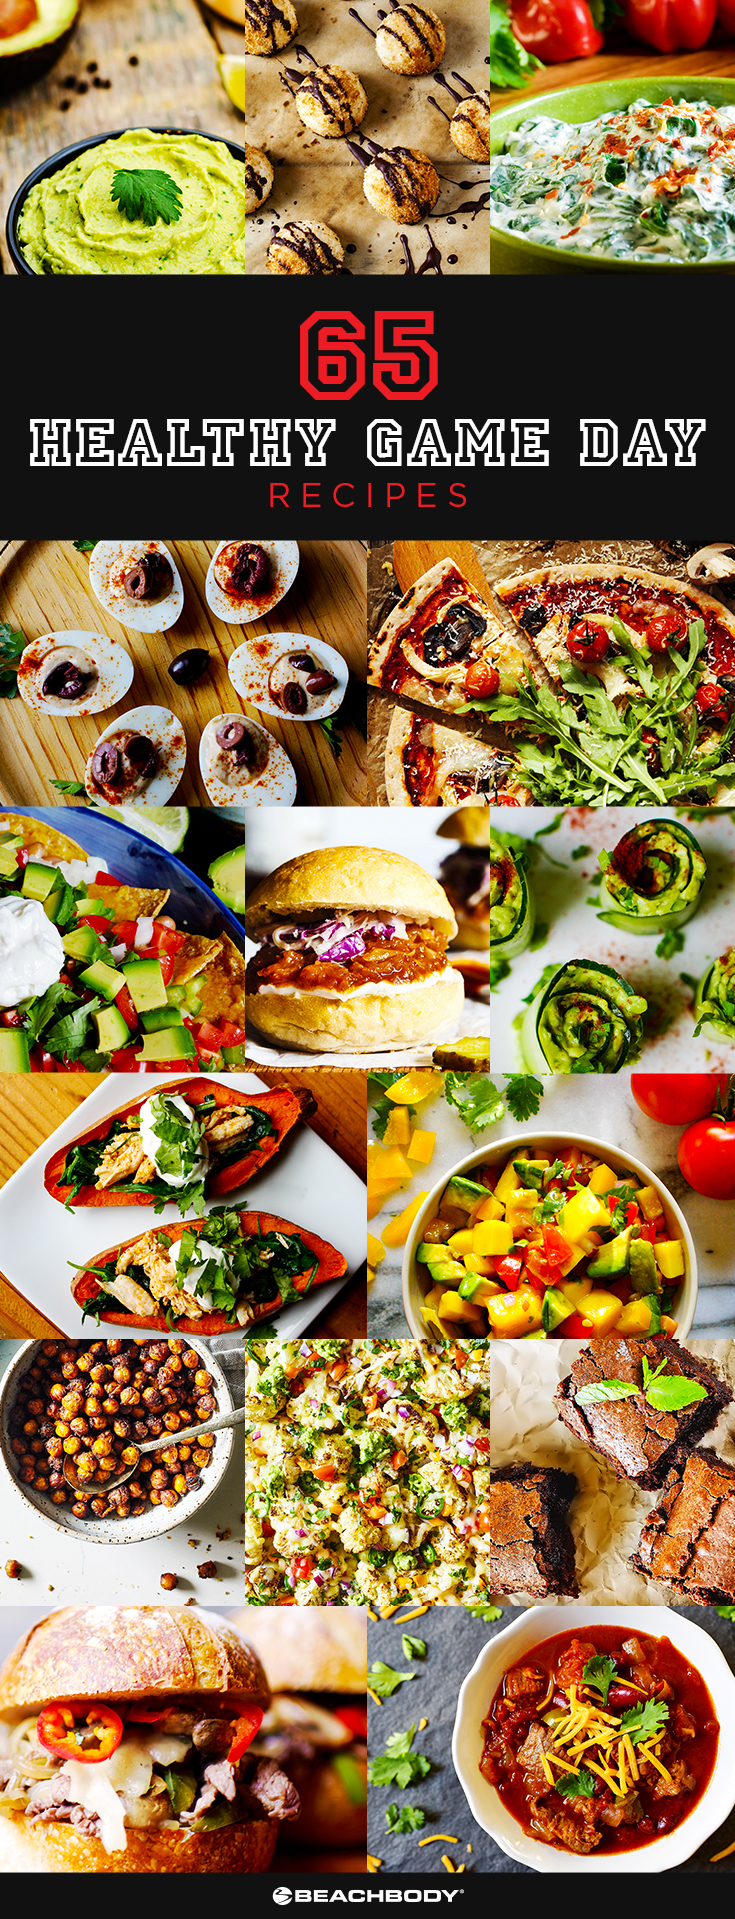 65 Healthy Game Day Recipes for snacks, dips, nachos, chili, pizzas, and more.